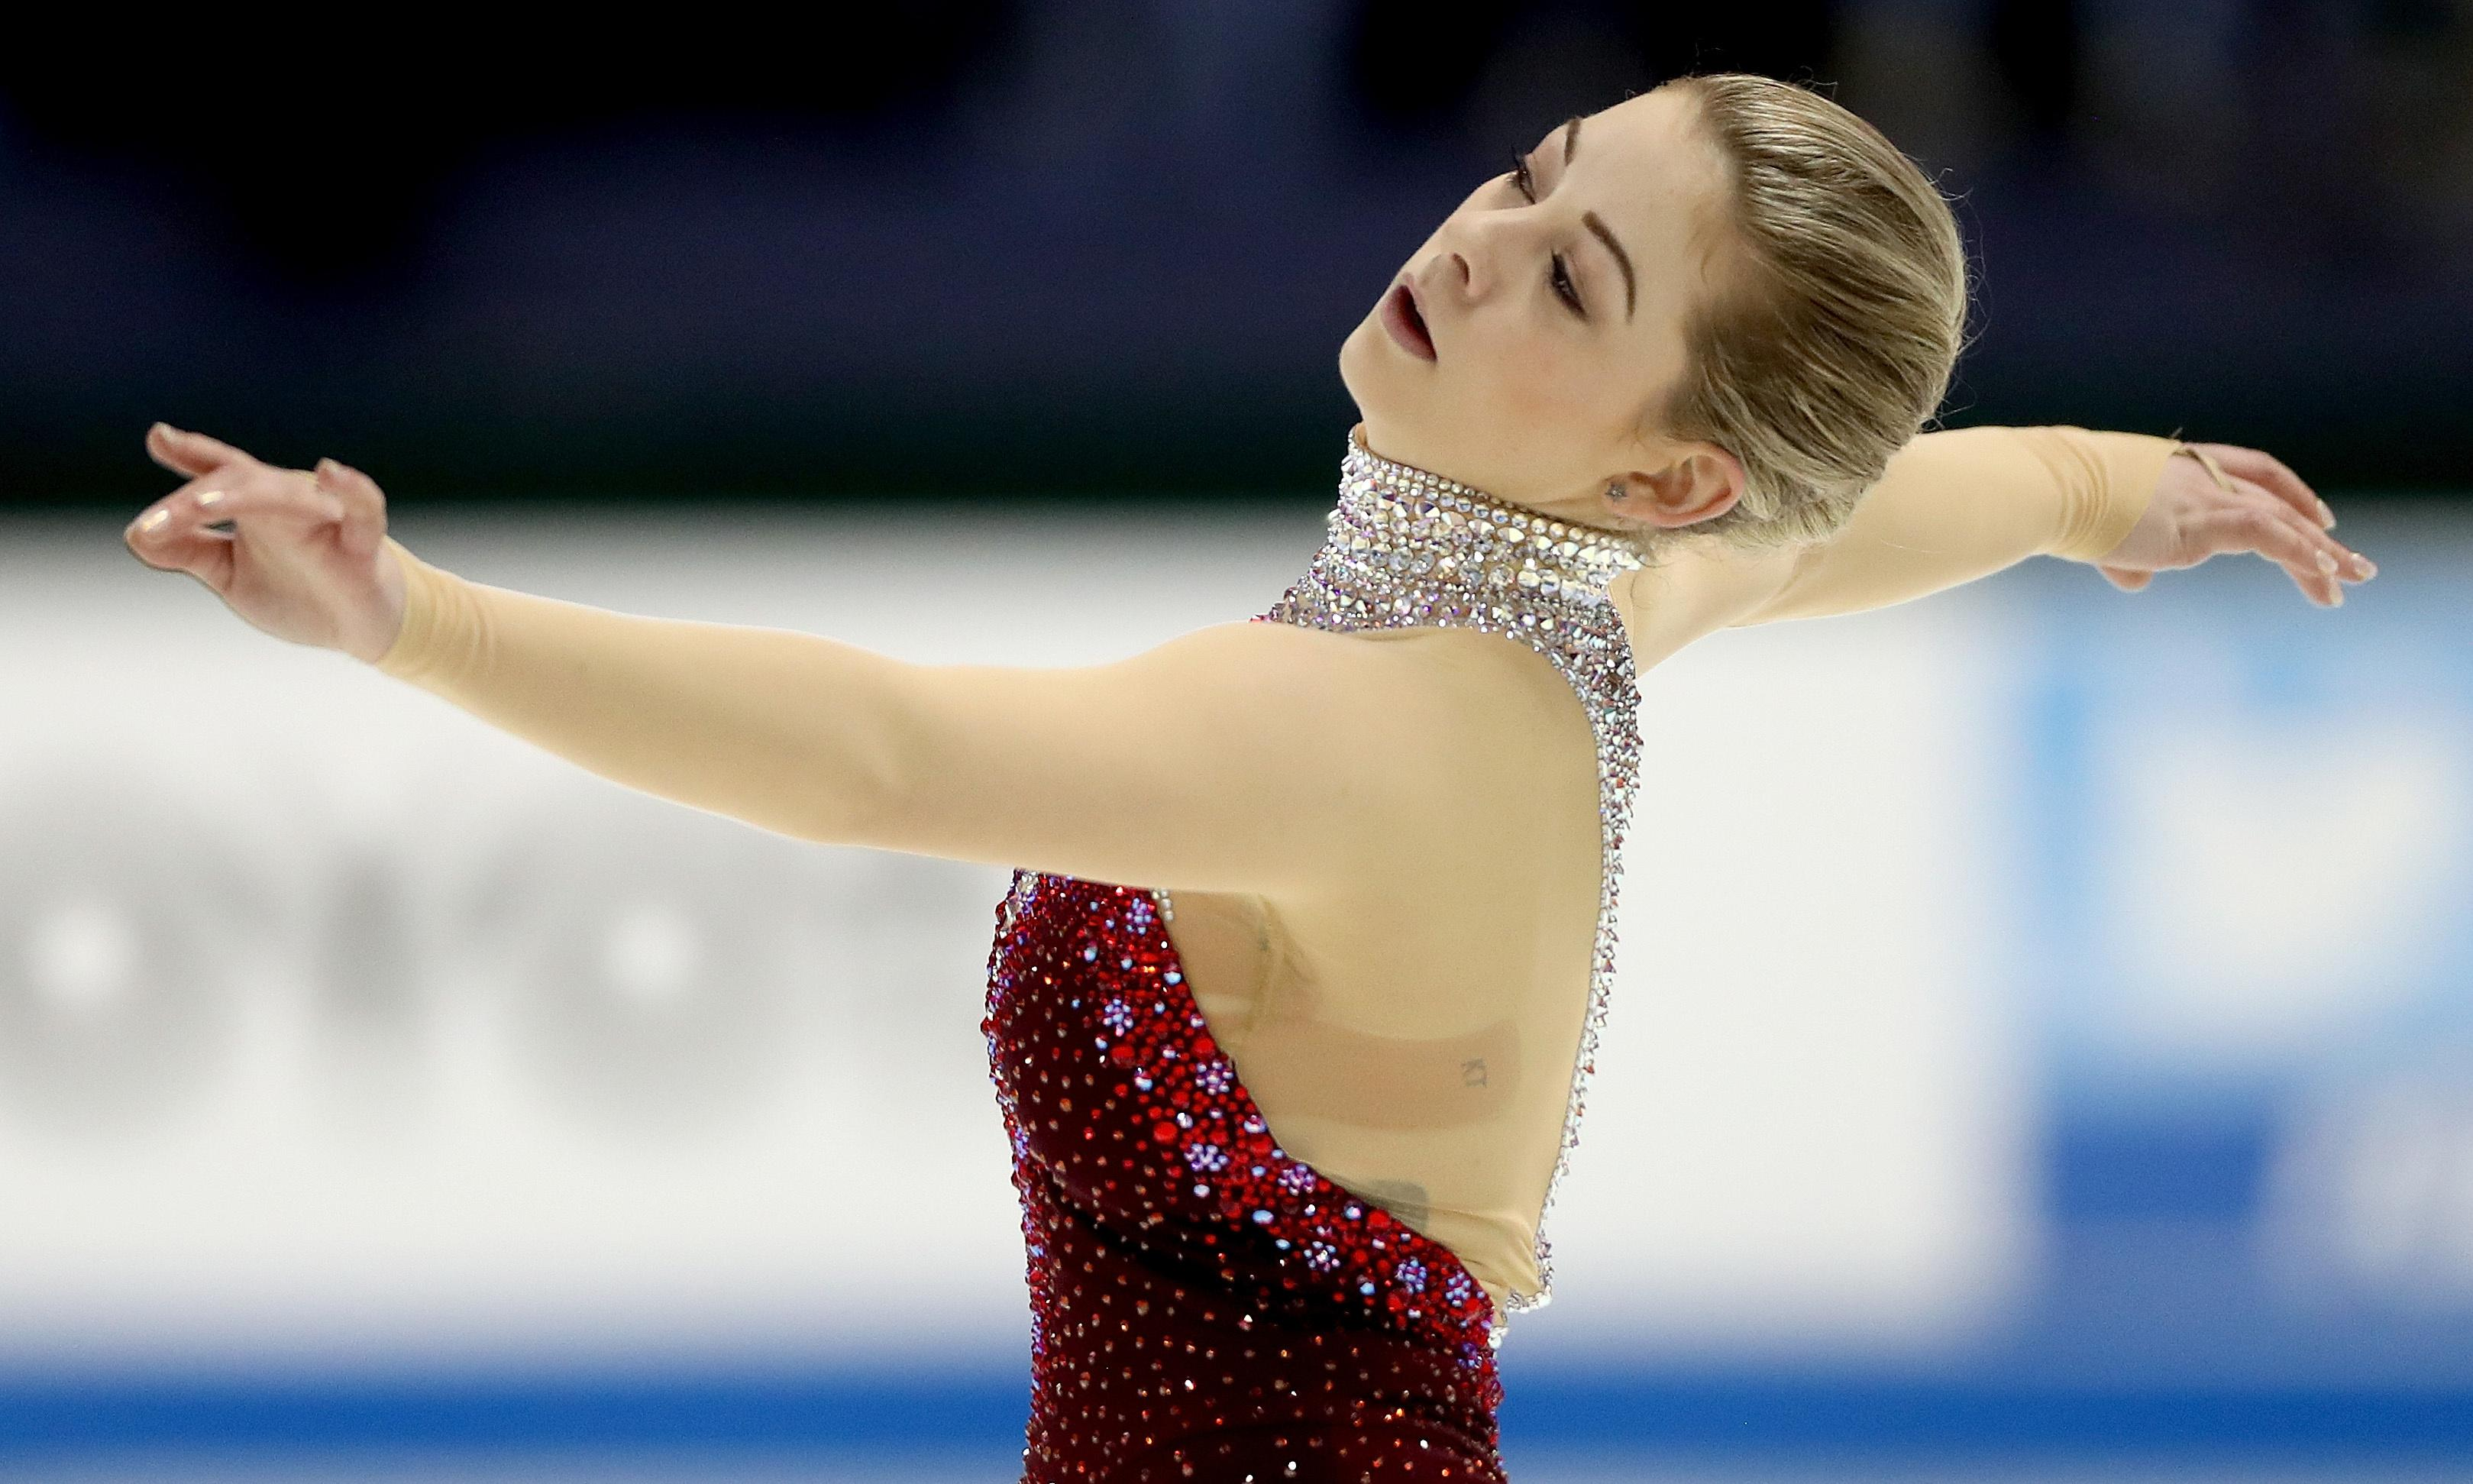 Figure skater Gracie Gold's three-year road back from the abyss